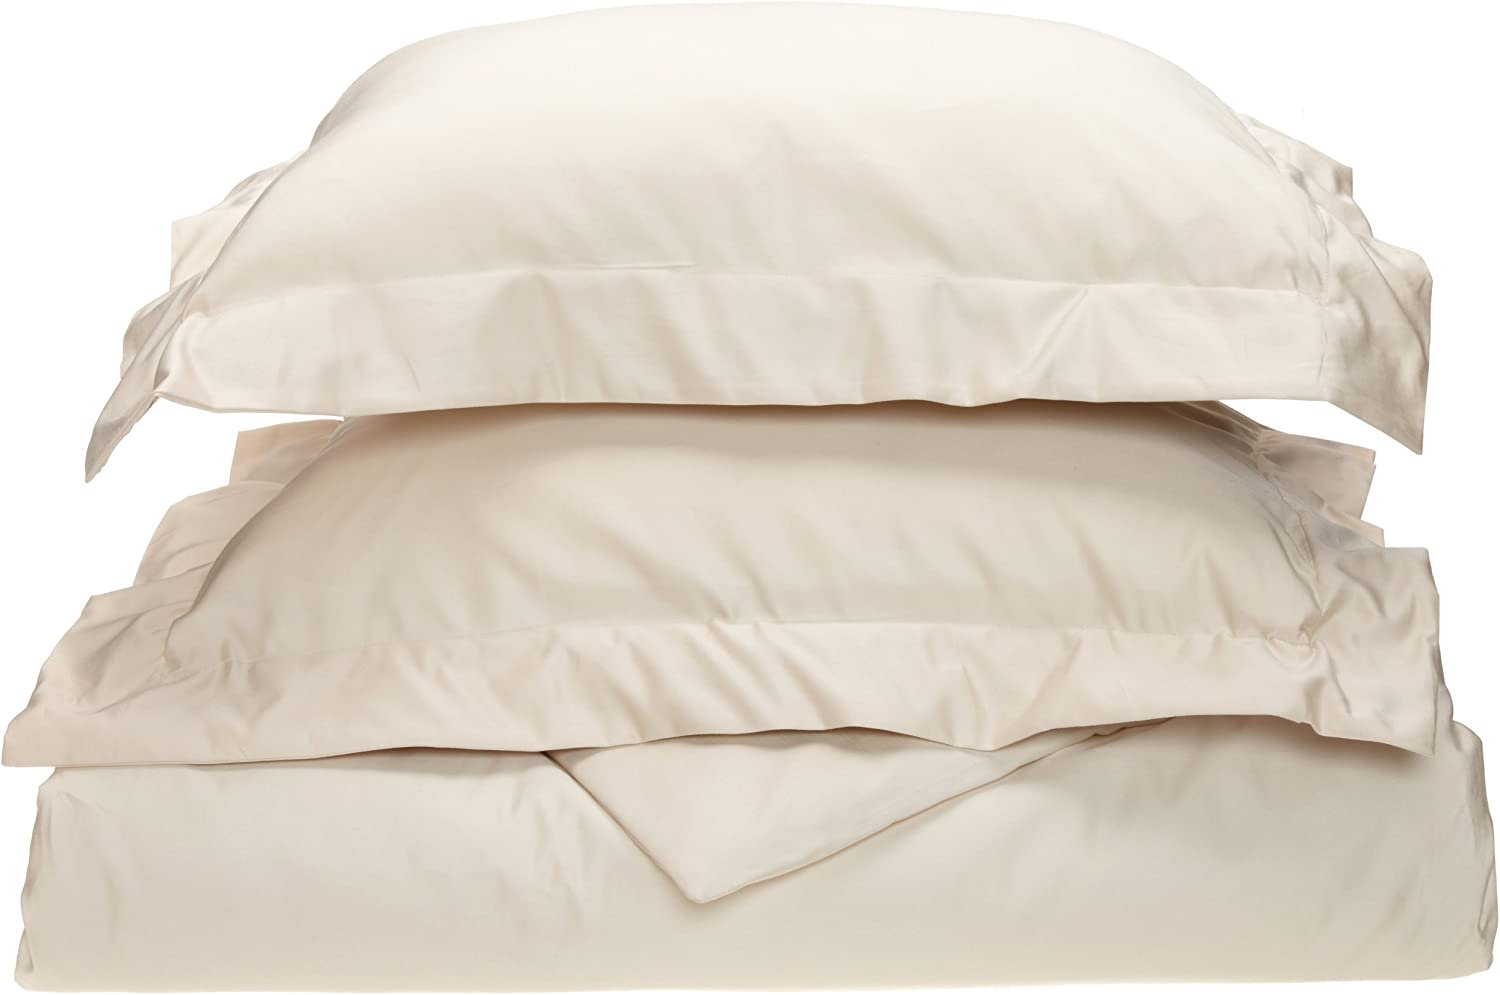 Impressions 800 Thread Count Cotton Limited price King supreme Combed California